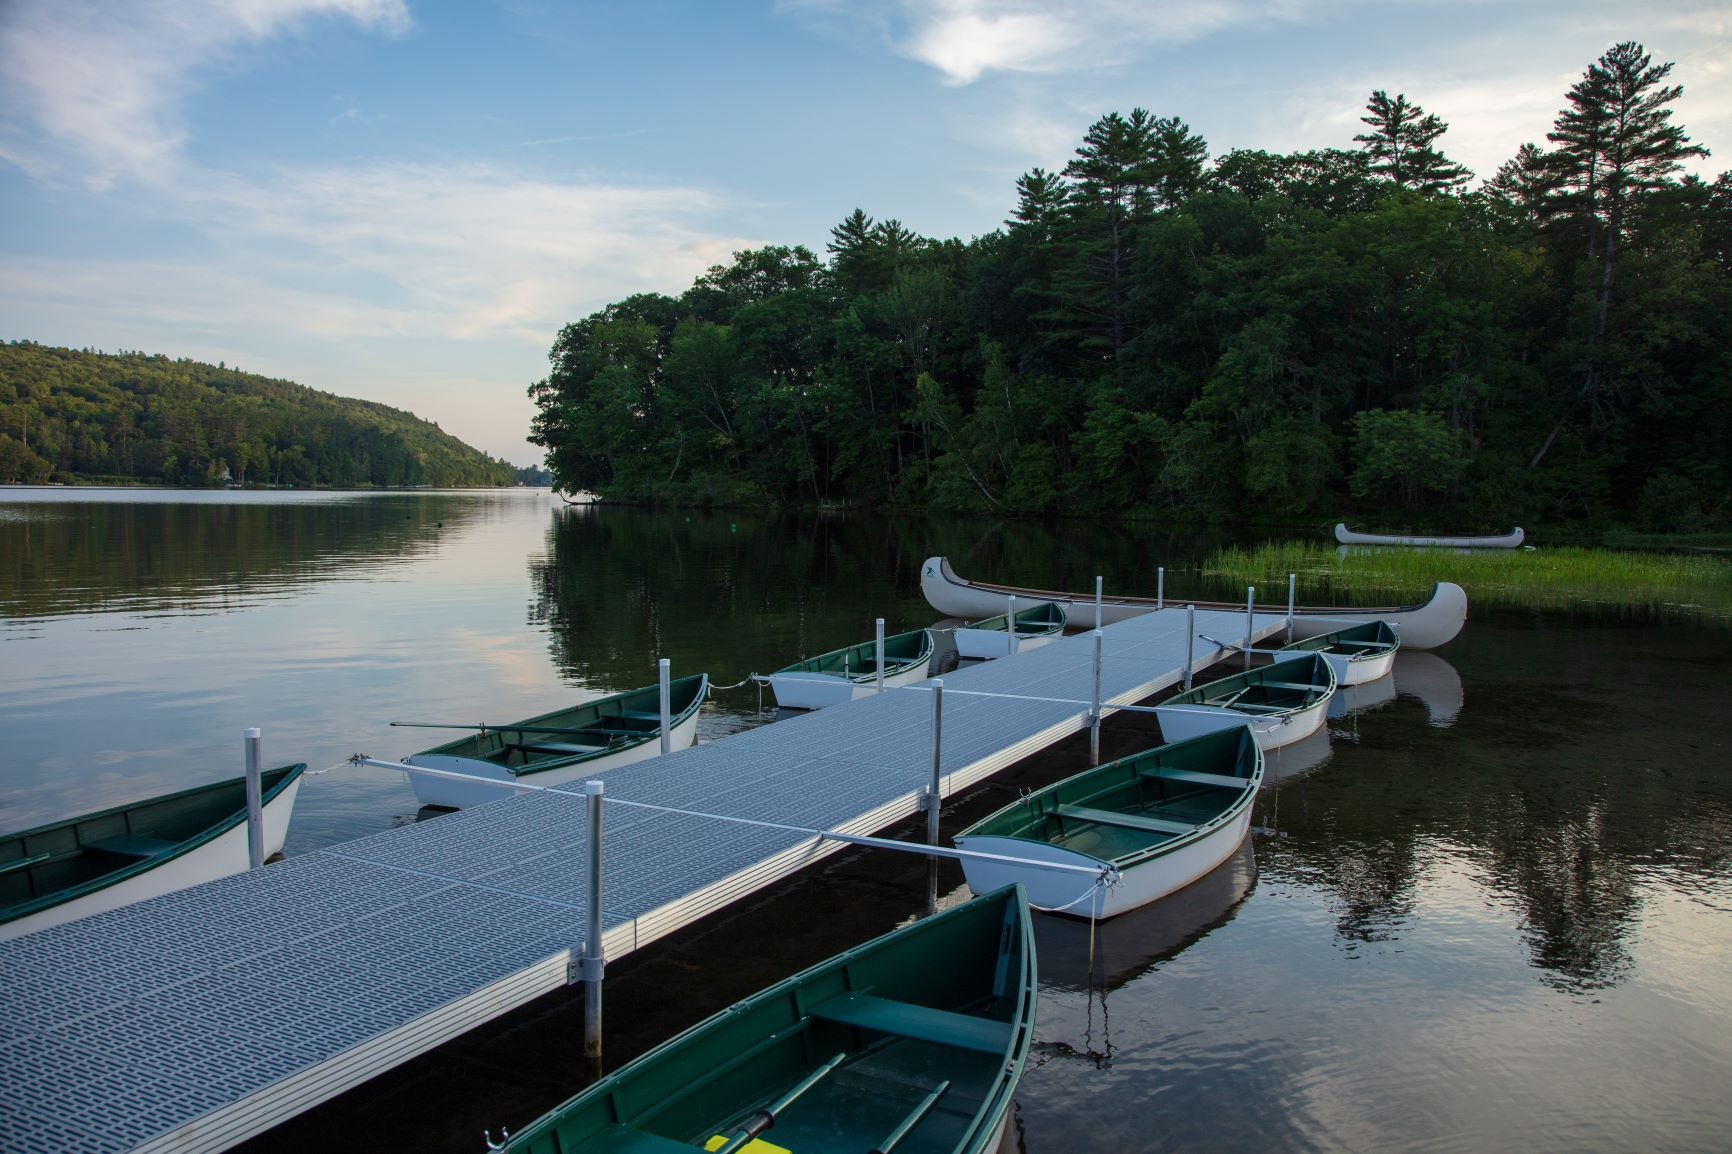 A bunch of row boats next to the docks on the lake.